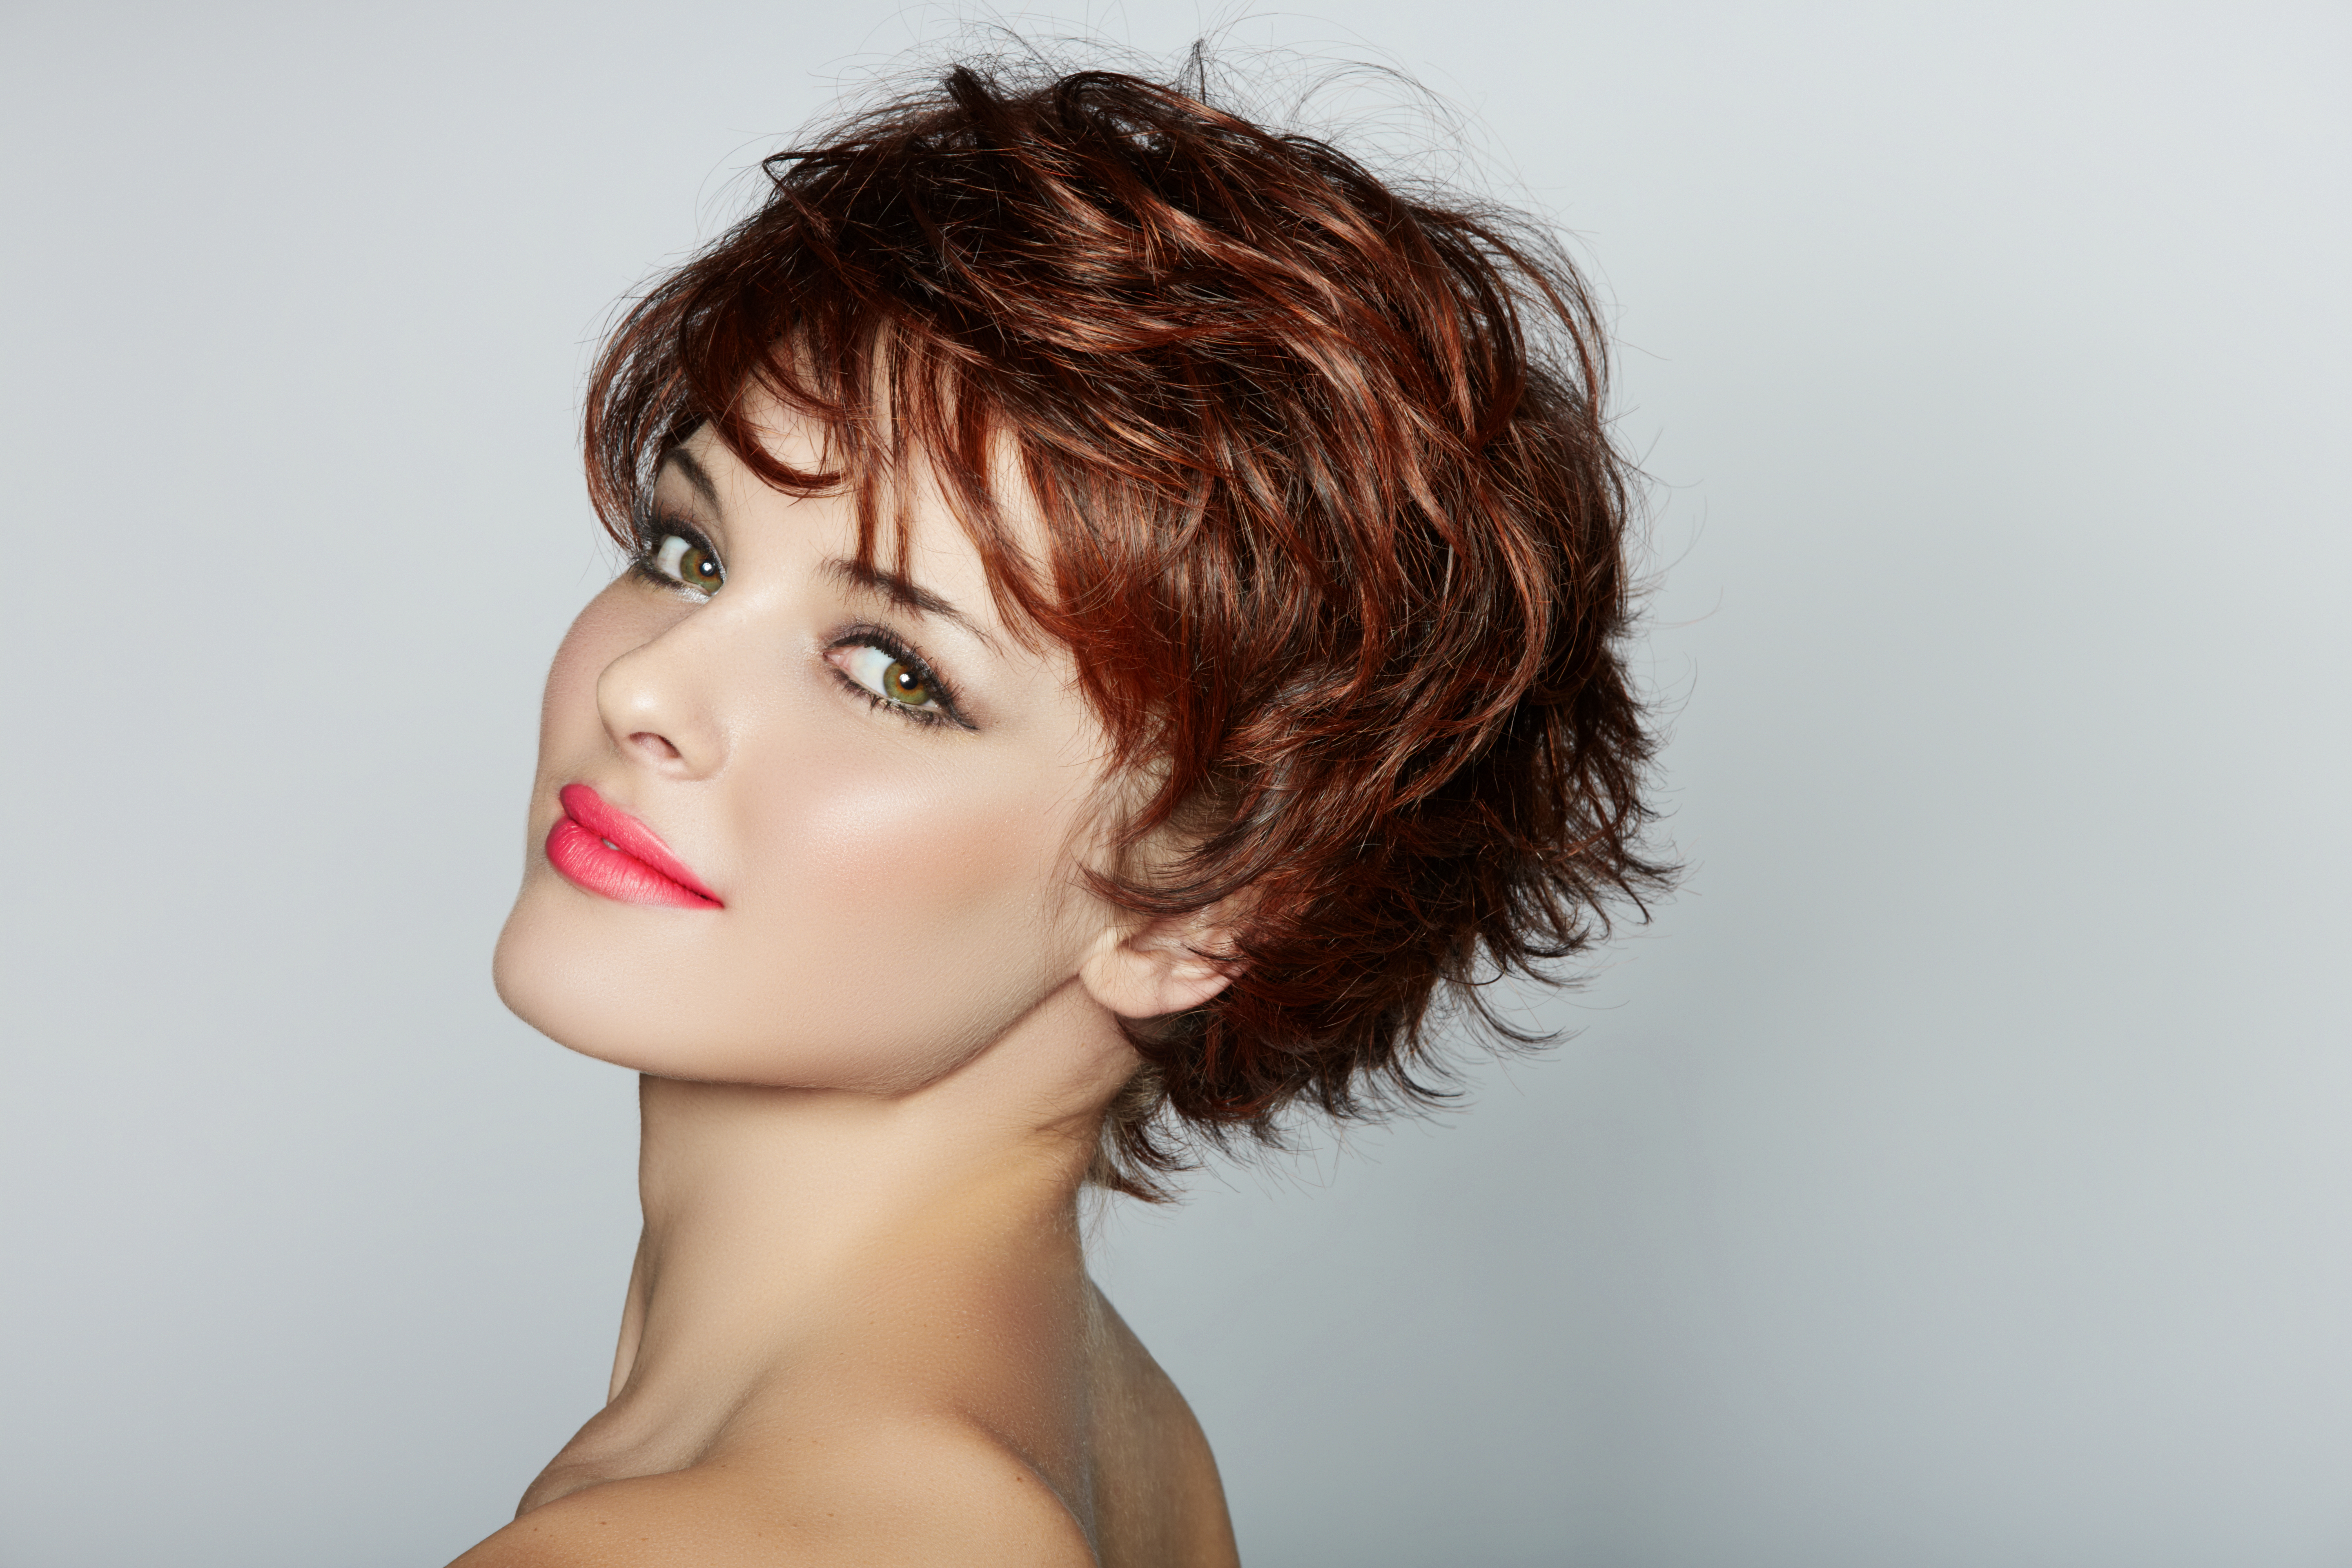 30 Beautiful Short Haircuts For Curly Frizzy Hair | Unique Kitchen In Short Haircuts For Thick Curly Frizzy Hair (View 11 of 25)